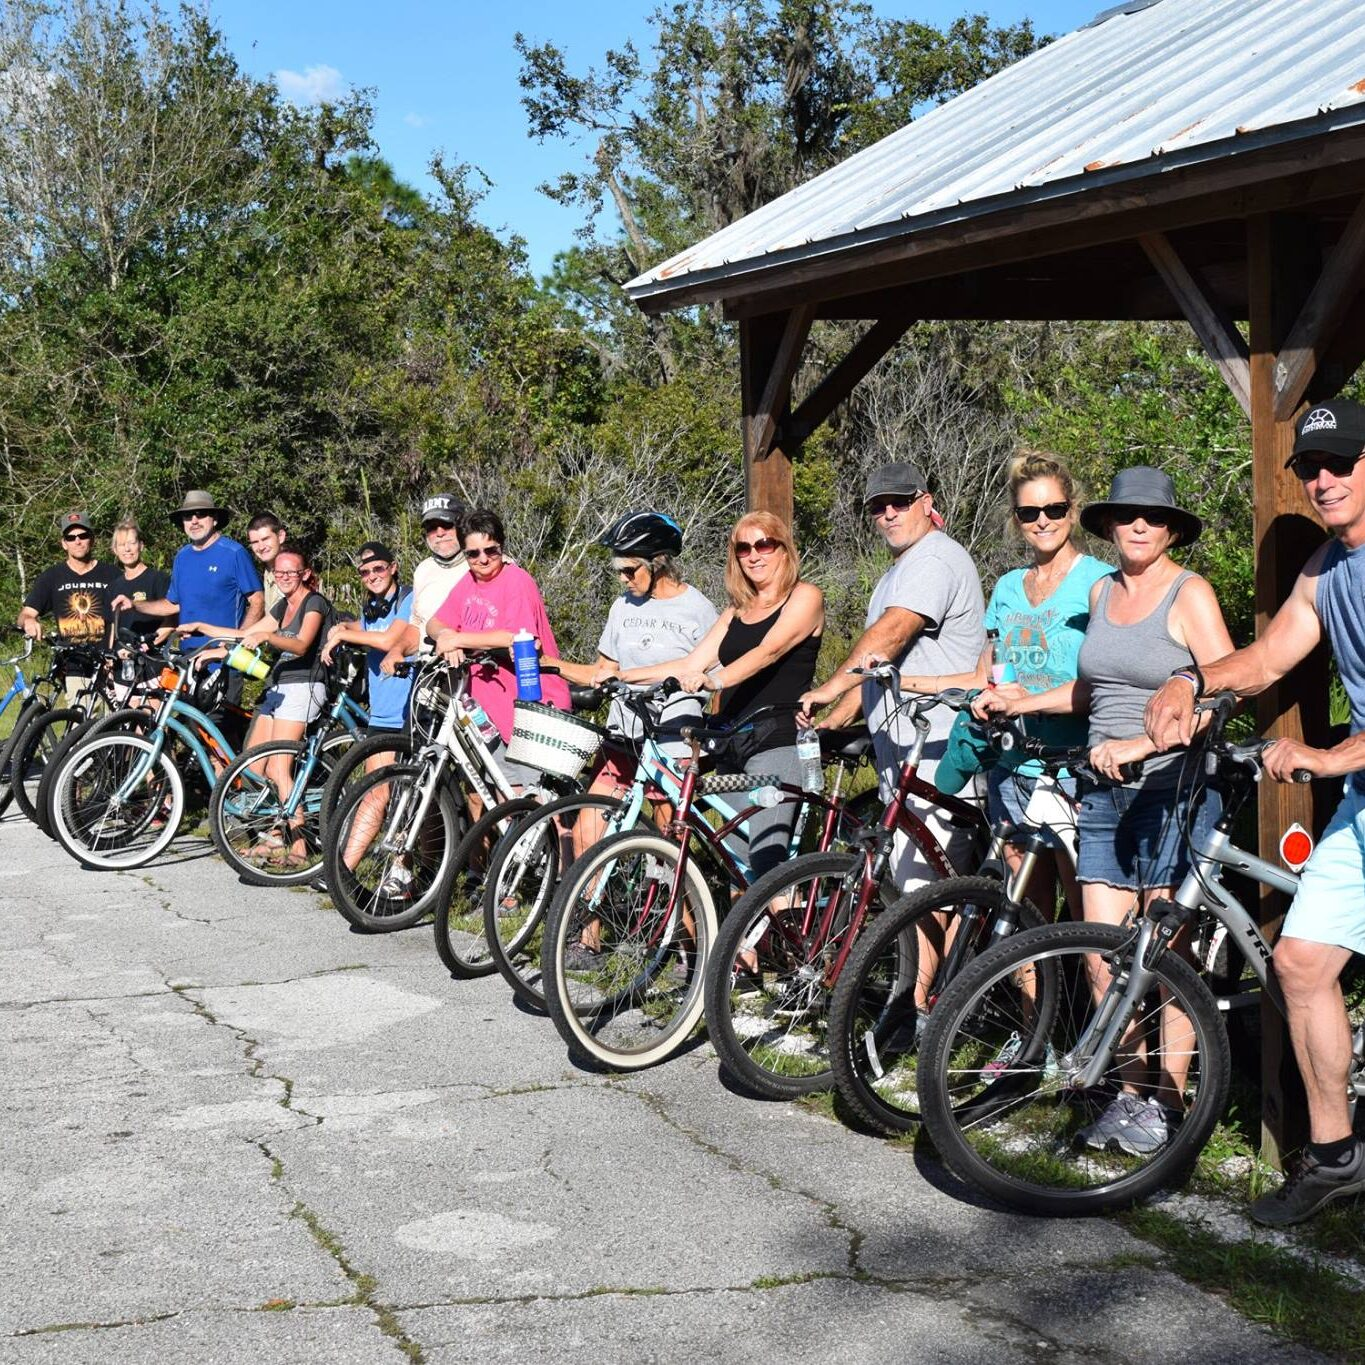 Come explore the state park on foot, horseback, car, or bike!